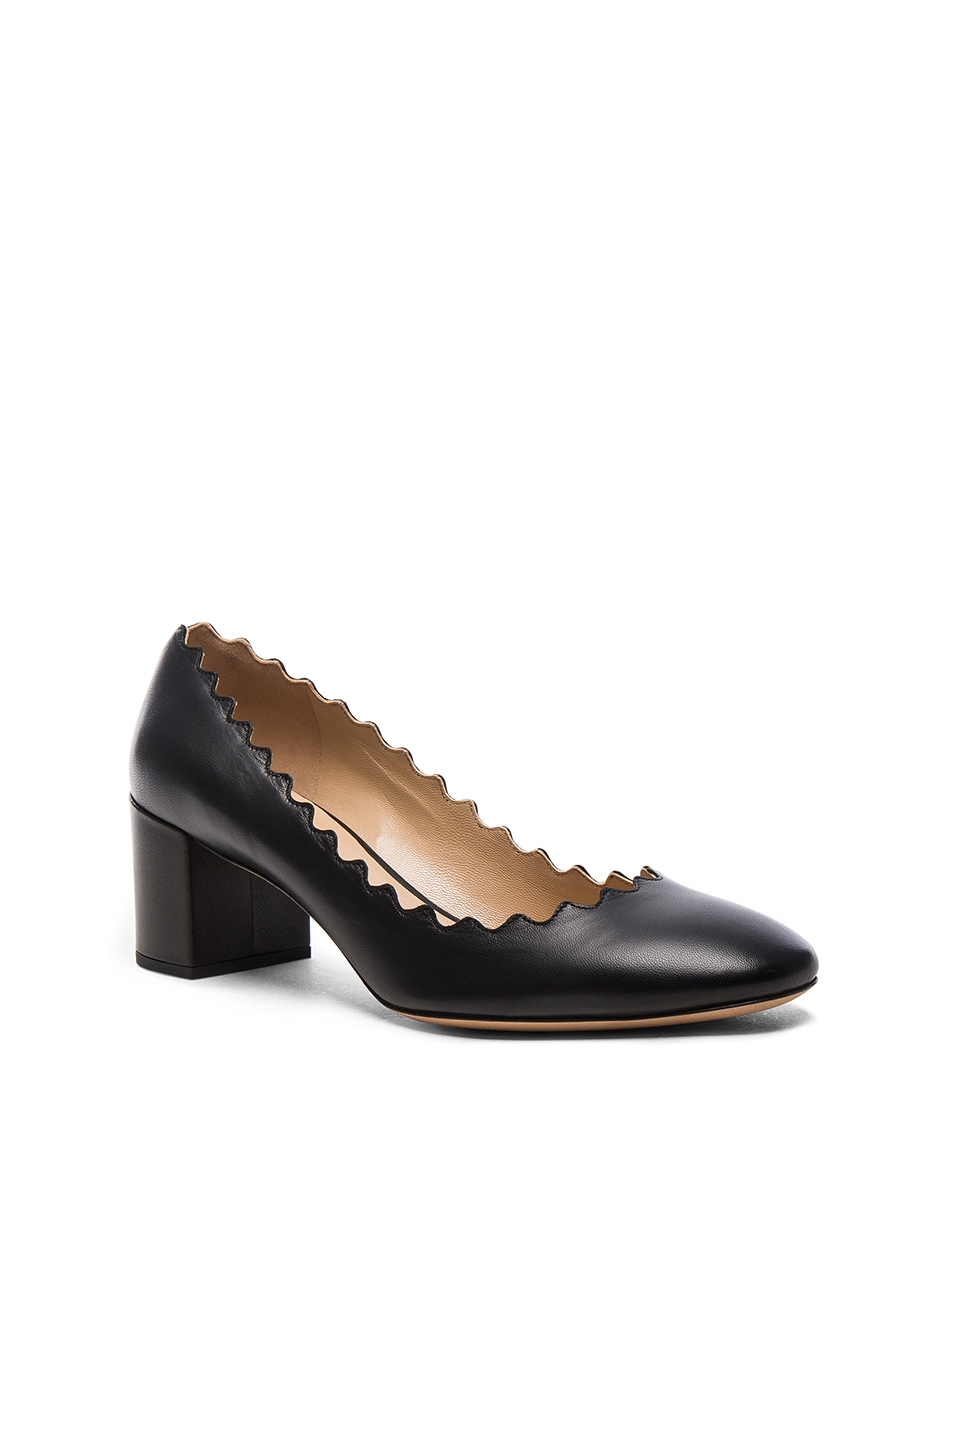 Image 2 of Chloe Lauren Leather Scallop Pumps in Black